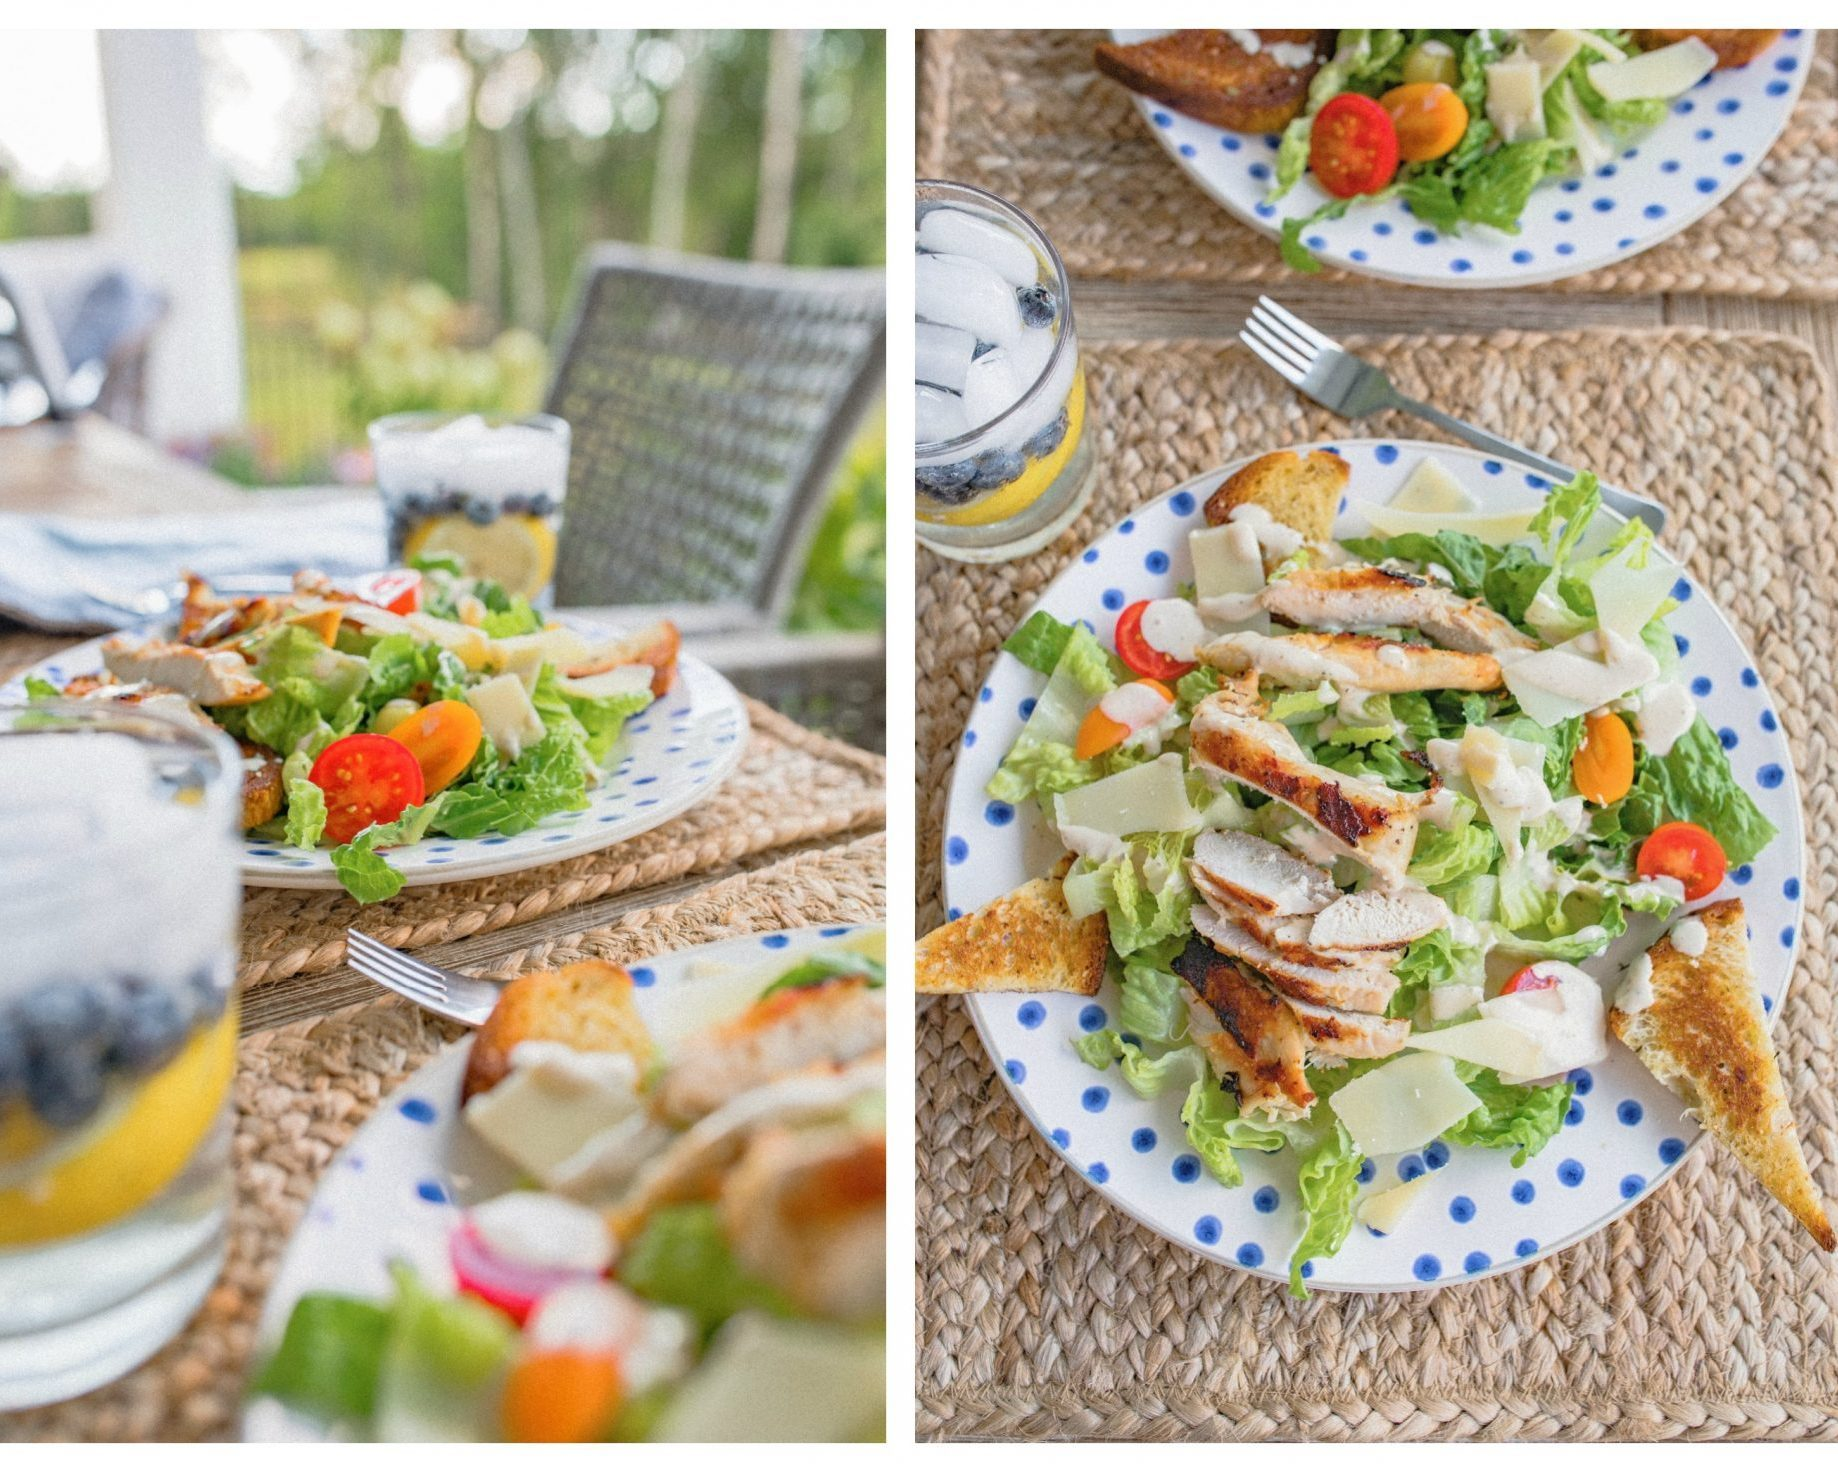 Italian summer, Caesar salad, fresh dinner, gluten free, grilled chicken, healthy dinner, farm to table, farm fresh, delicious , food dinner, summer nights, southern nights, backyard picnics, salads, caesar dressing